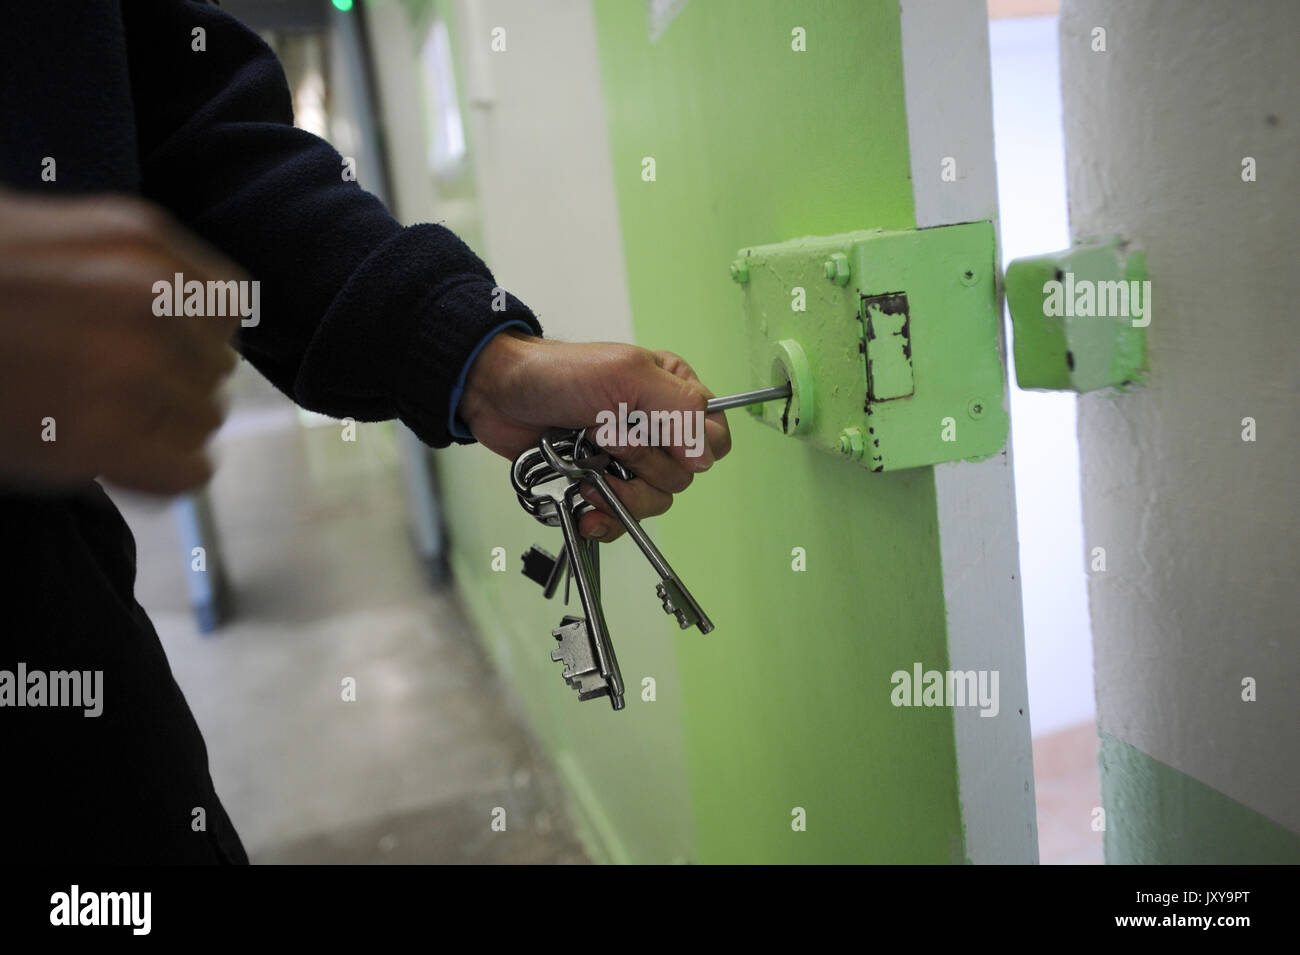 Saint-Martin-de-Re on 2015/10/02: prison warden opening a cell with his bundle of keys - Stock Image